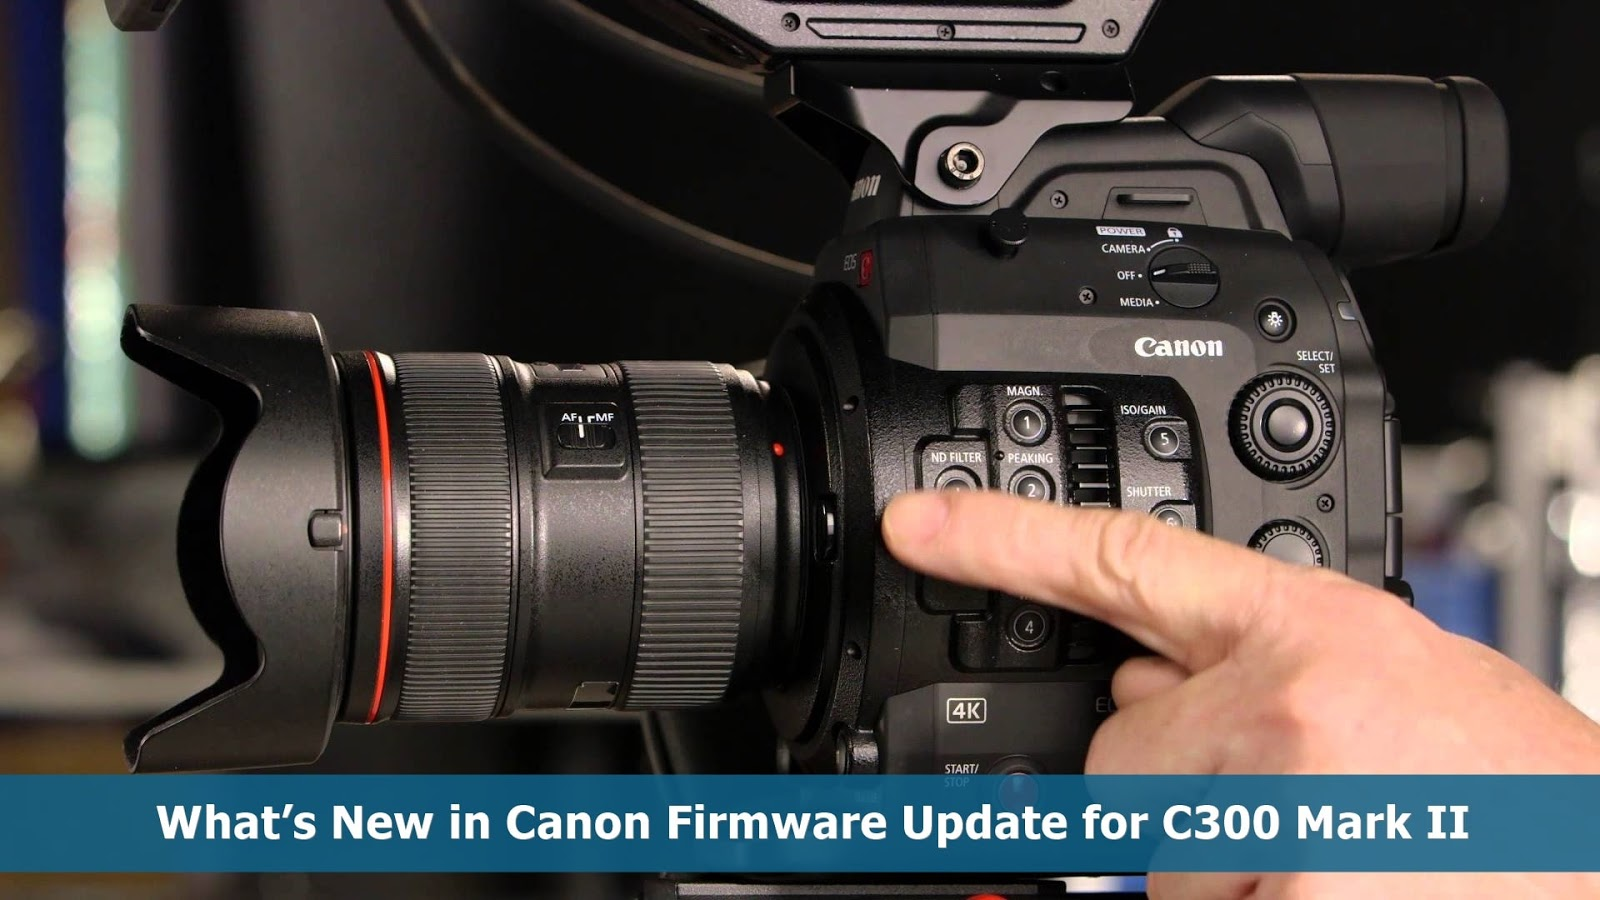 Canon C300 Mark II firmware